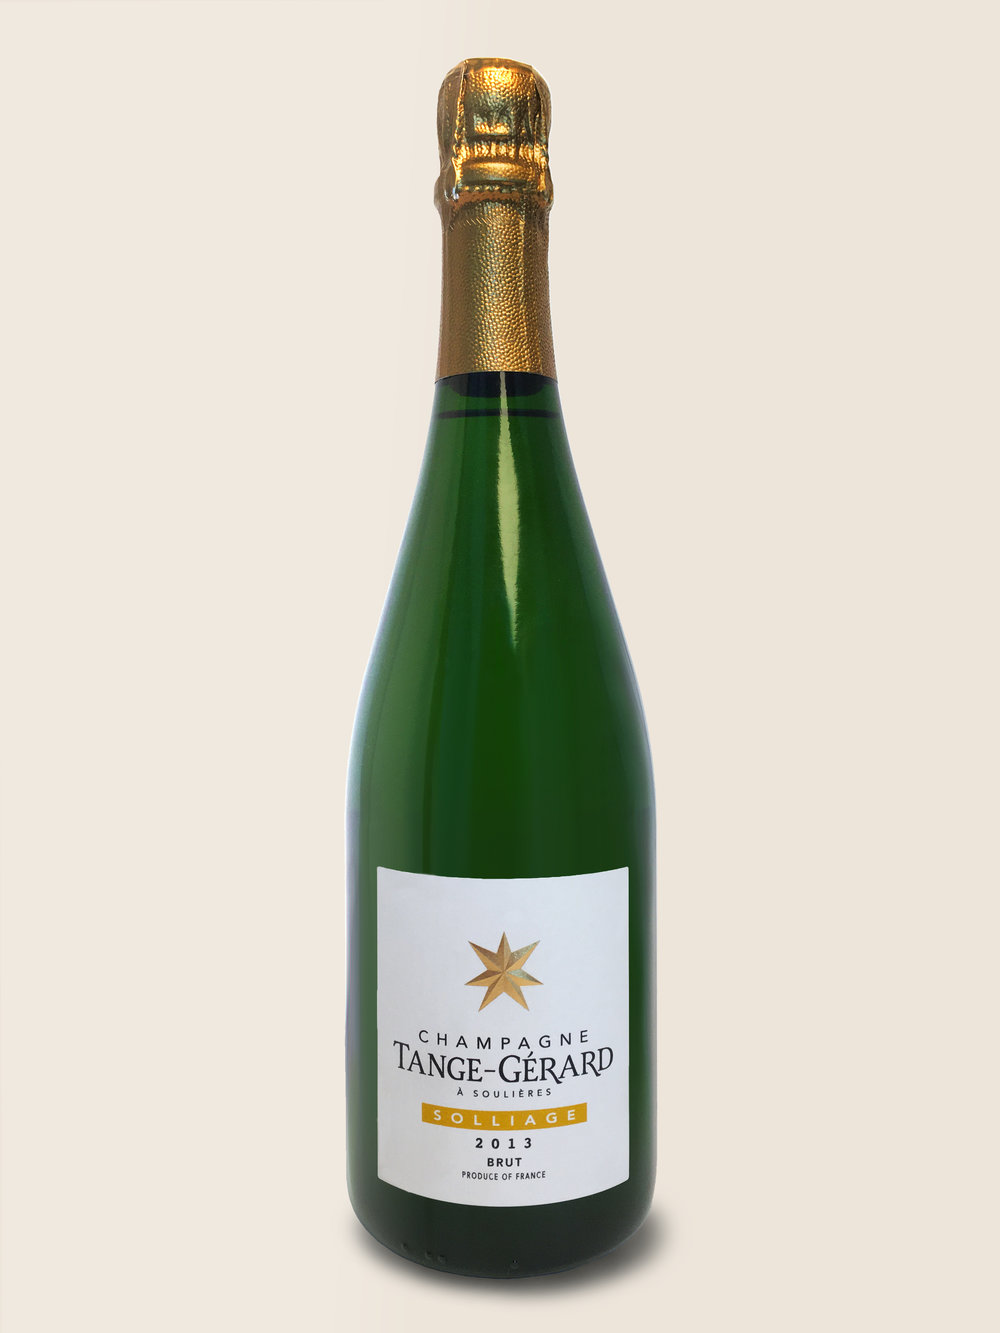 Solliage - Solliage is very pure, very fresh and has a lot of edge. A blanc de blancs, made with 100% Chardonnays from the unusually late year of 2013. Made in a limited amount of 3.000 bottles only.